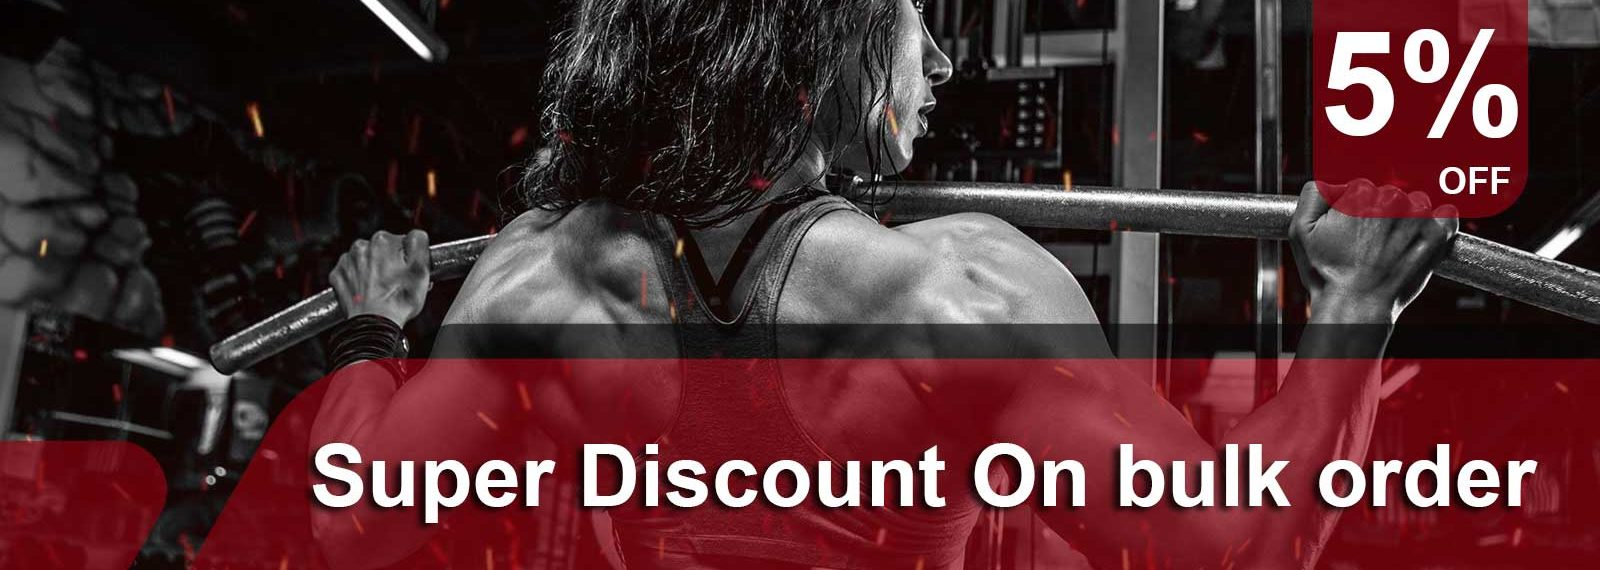 Where to buy real steroids online